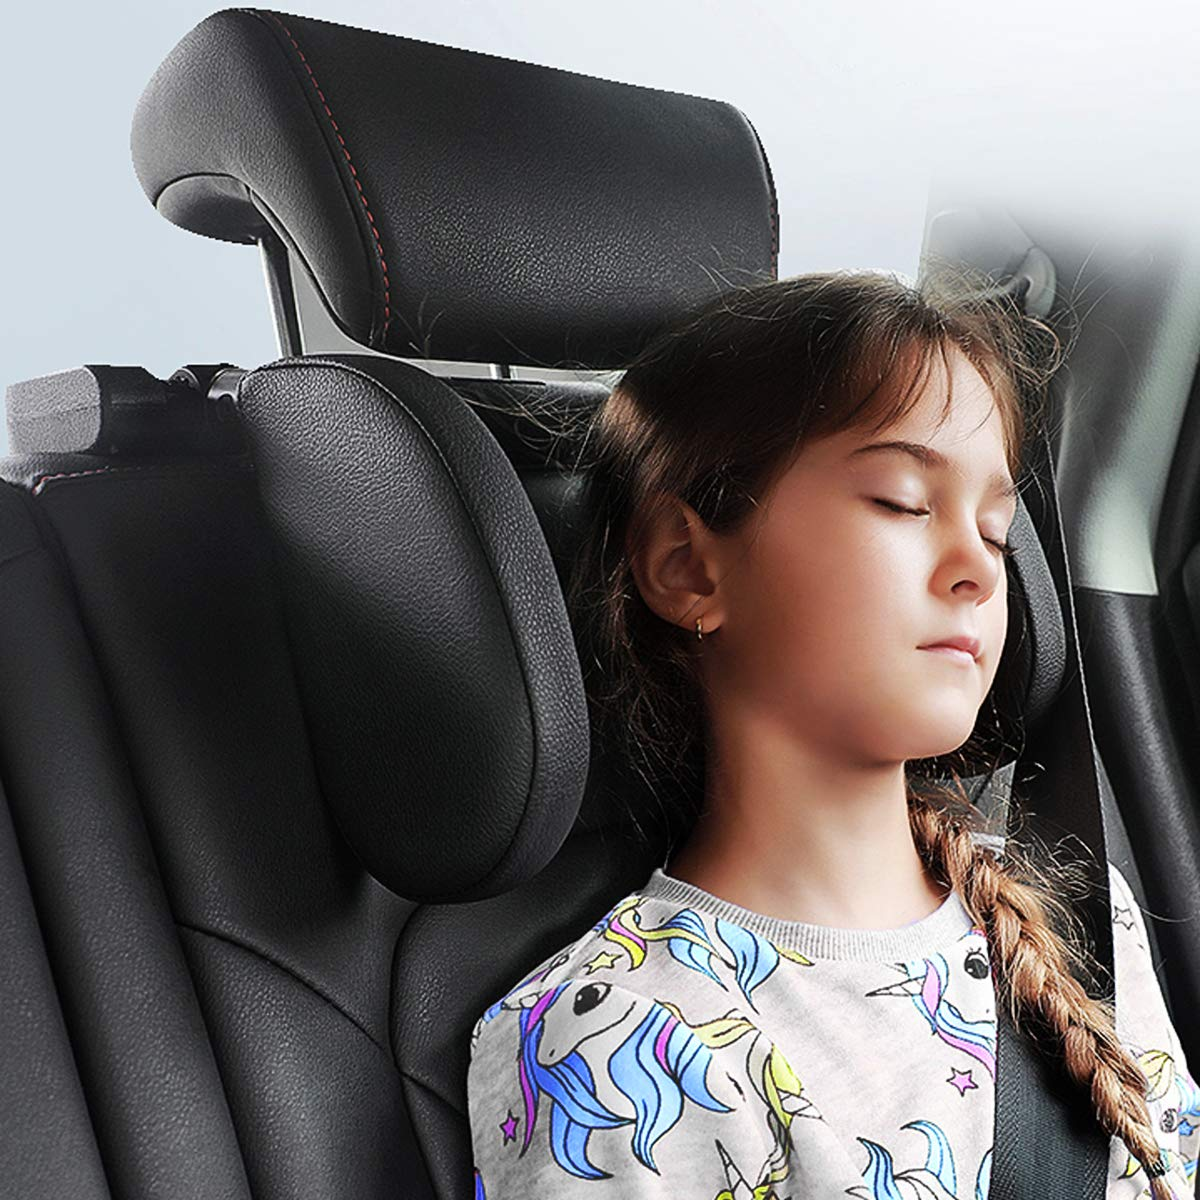 JZCreater Car Seat Headrest Pillow,Head Neck Support Detachable, Updated Premium Car Headset Pillow, 180 Degree Adjustable Both Sides Travel Sleeping Cushion for Kids Adult (Black)